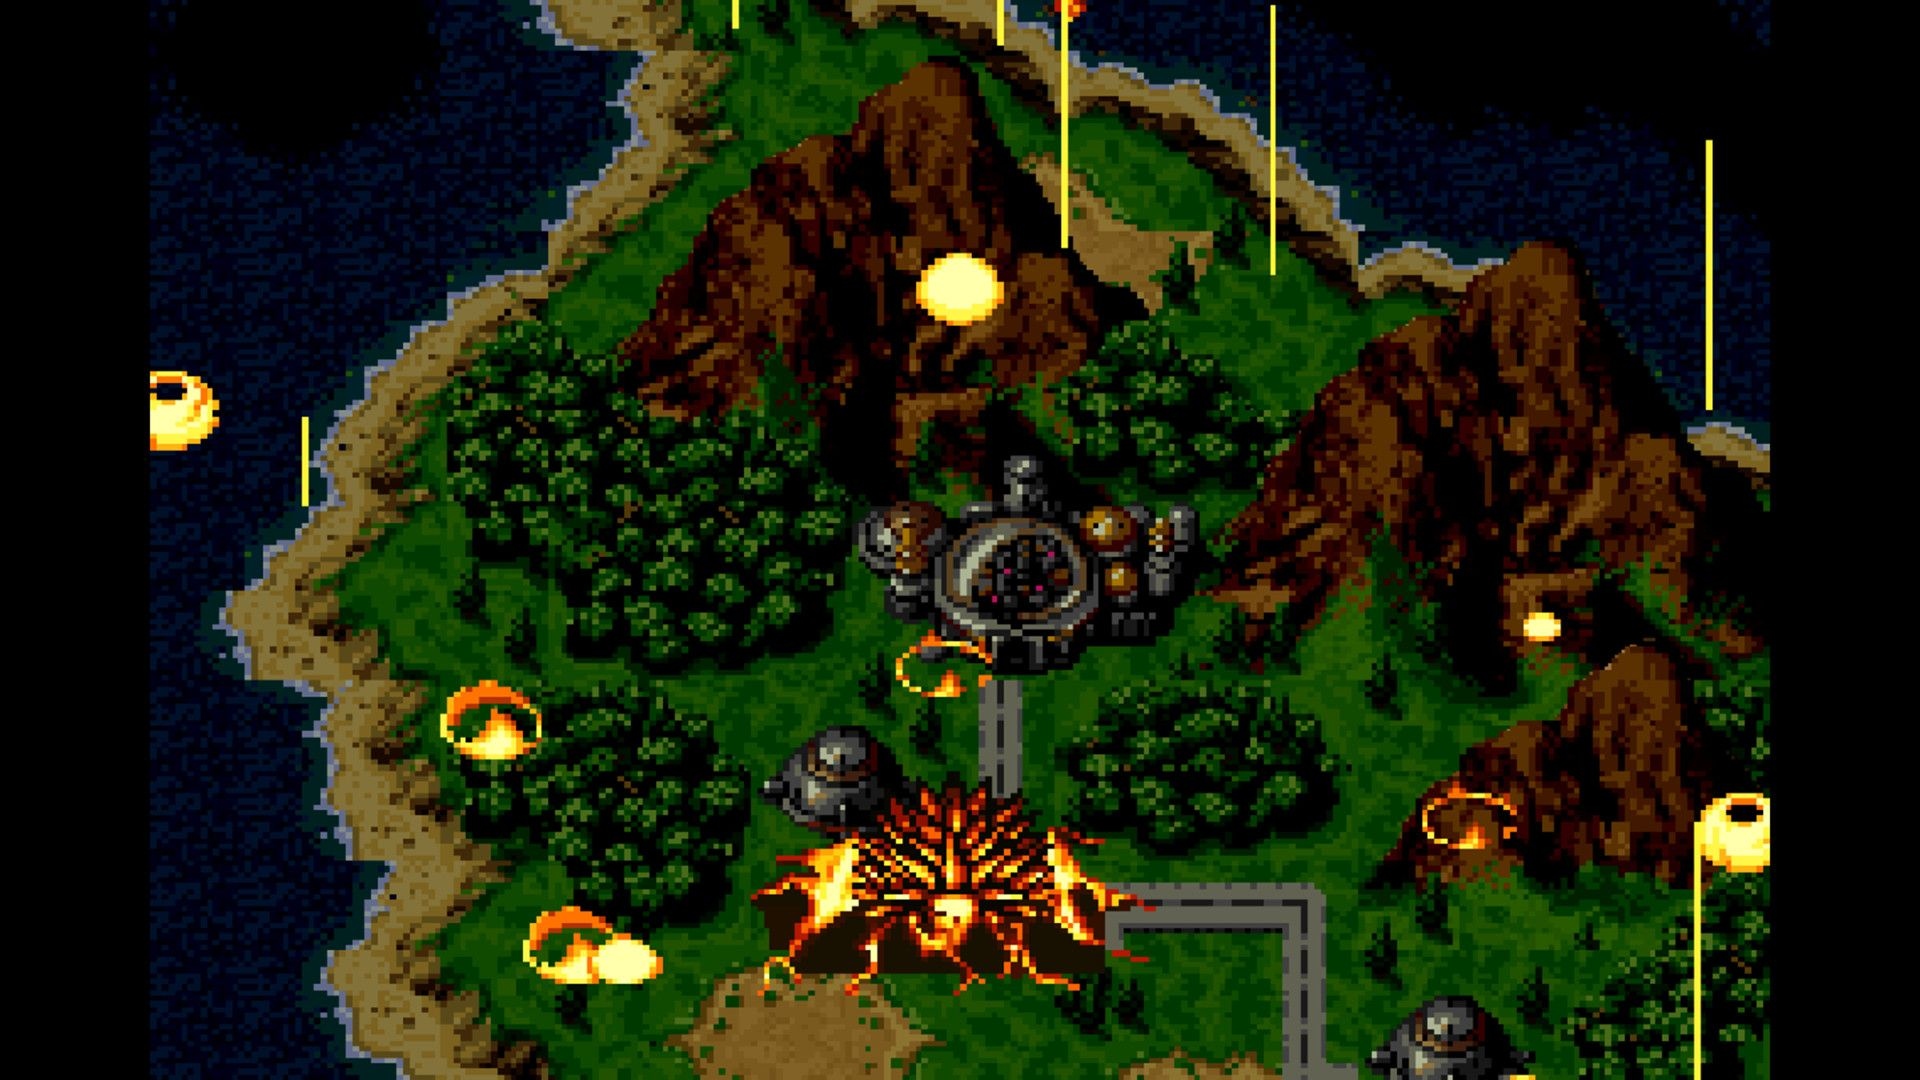 Chrono Trigger gets a surprise Steam release (but it kind of stinks)